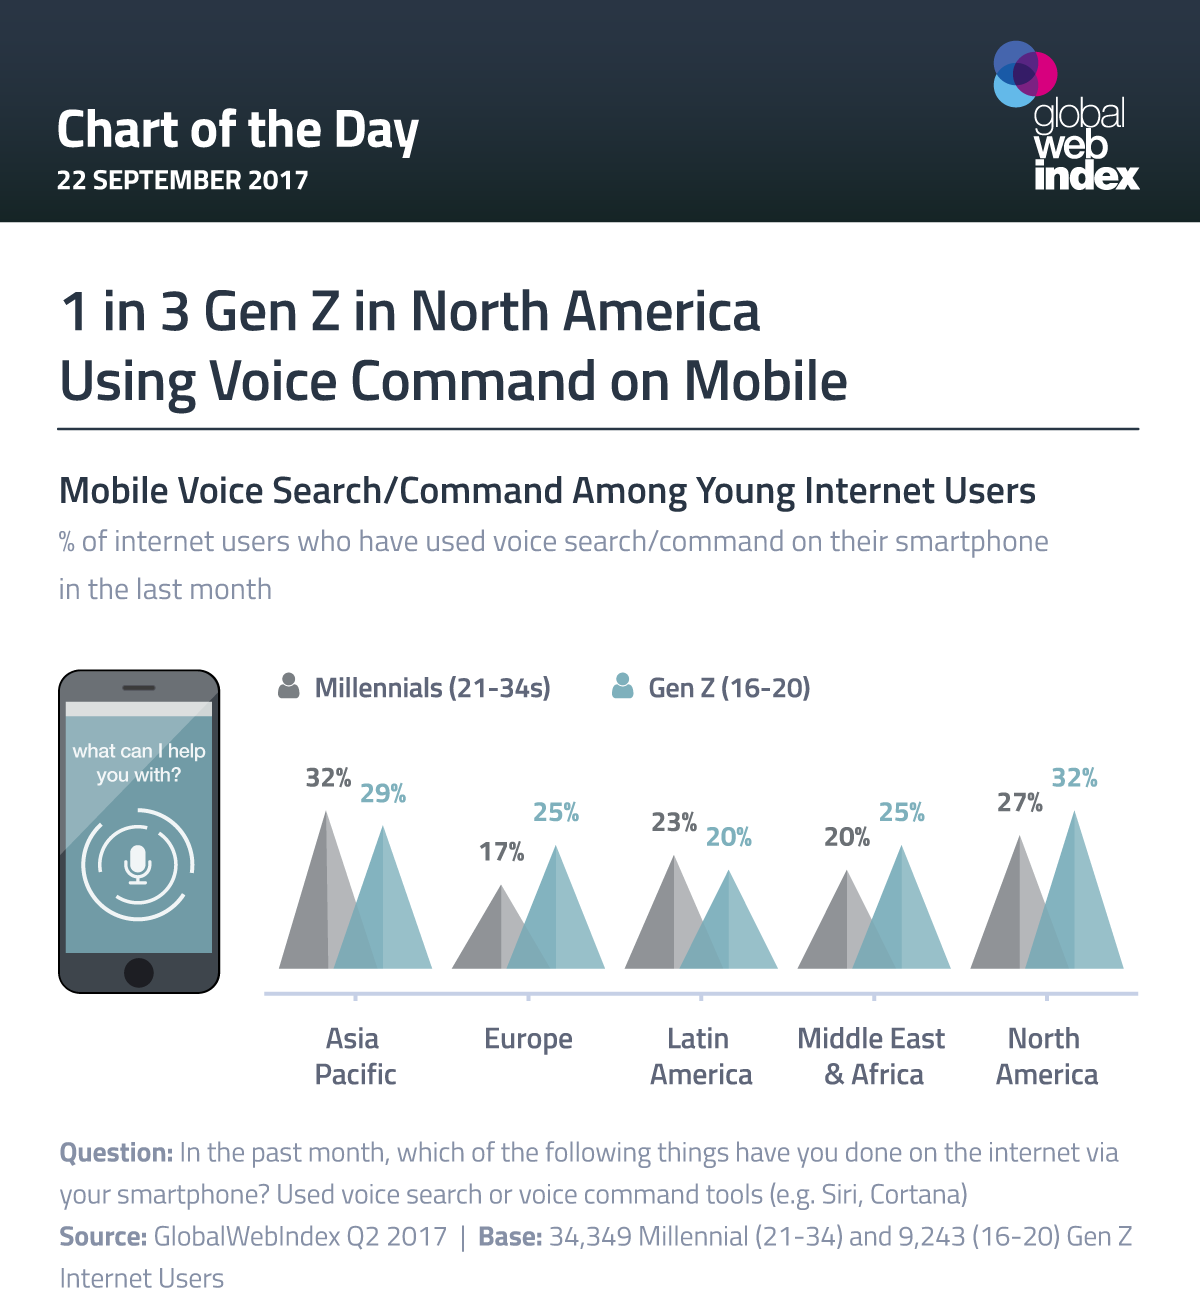 Is voice search a rising trend for Gen Z mobile users?